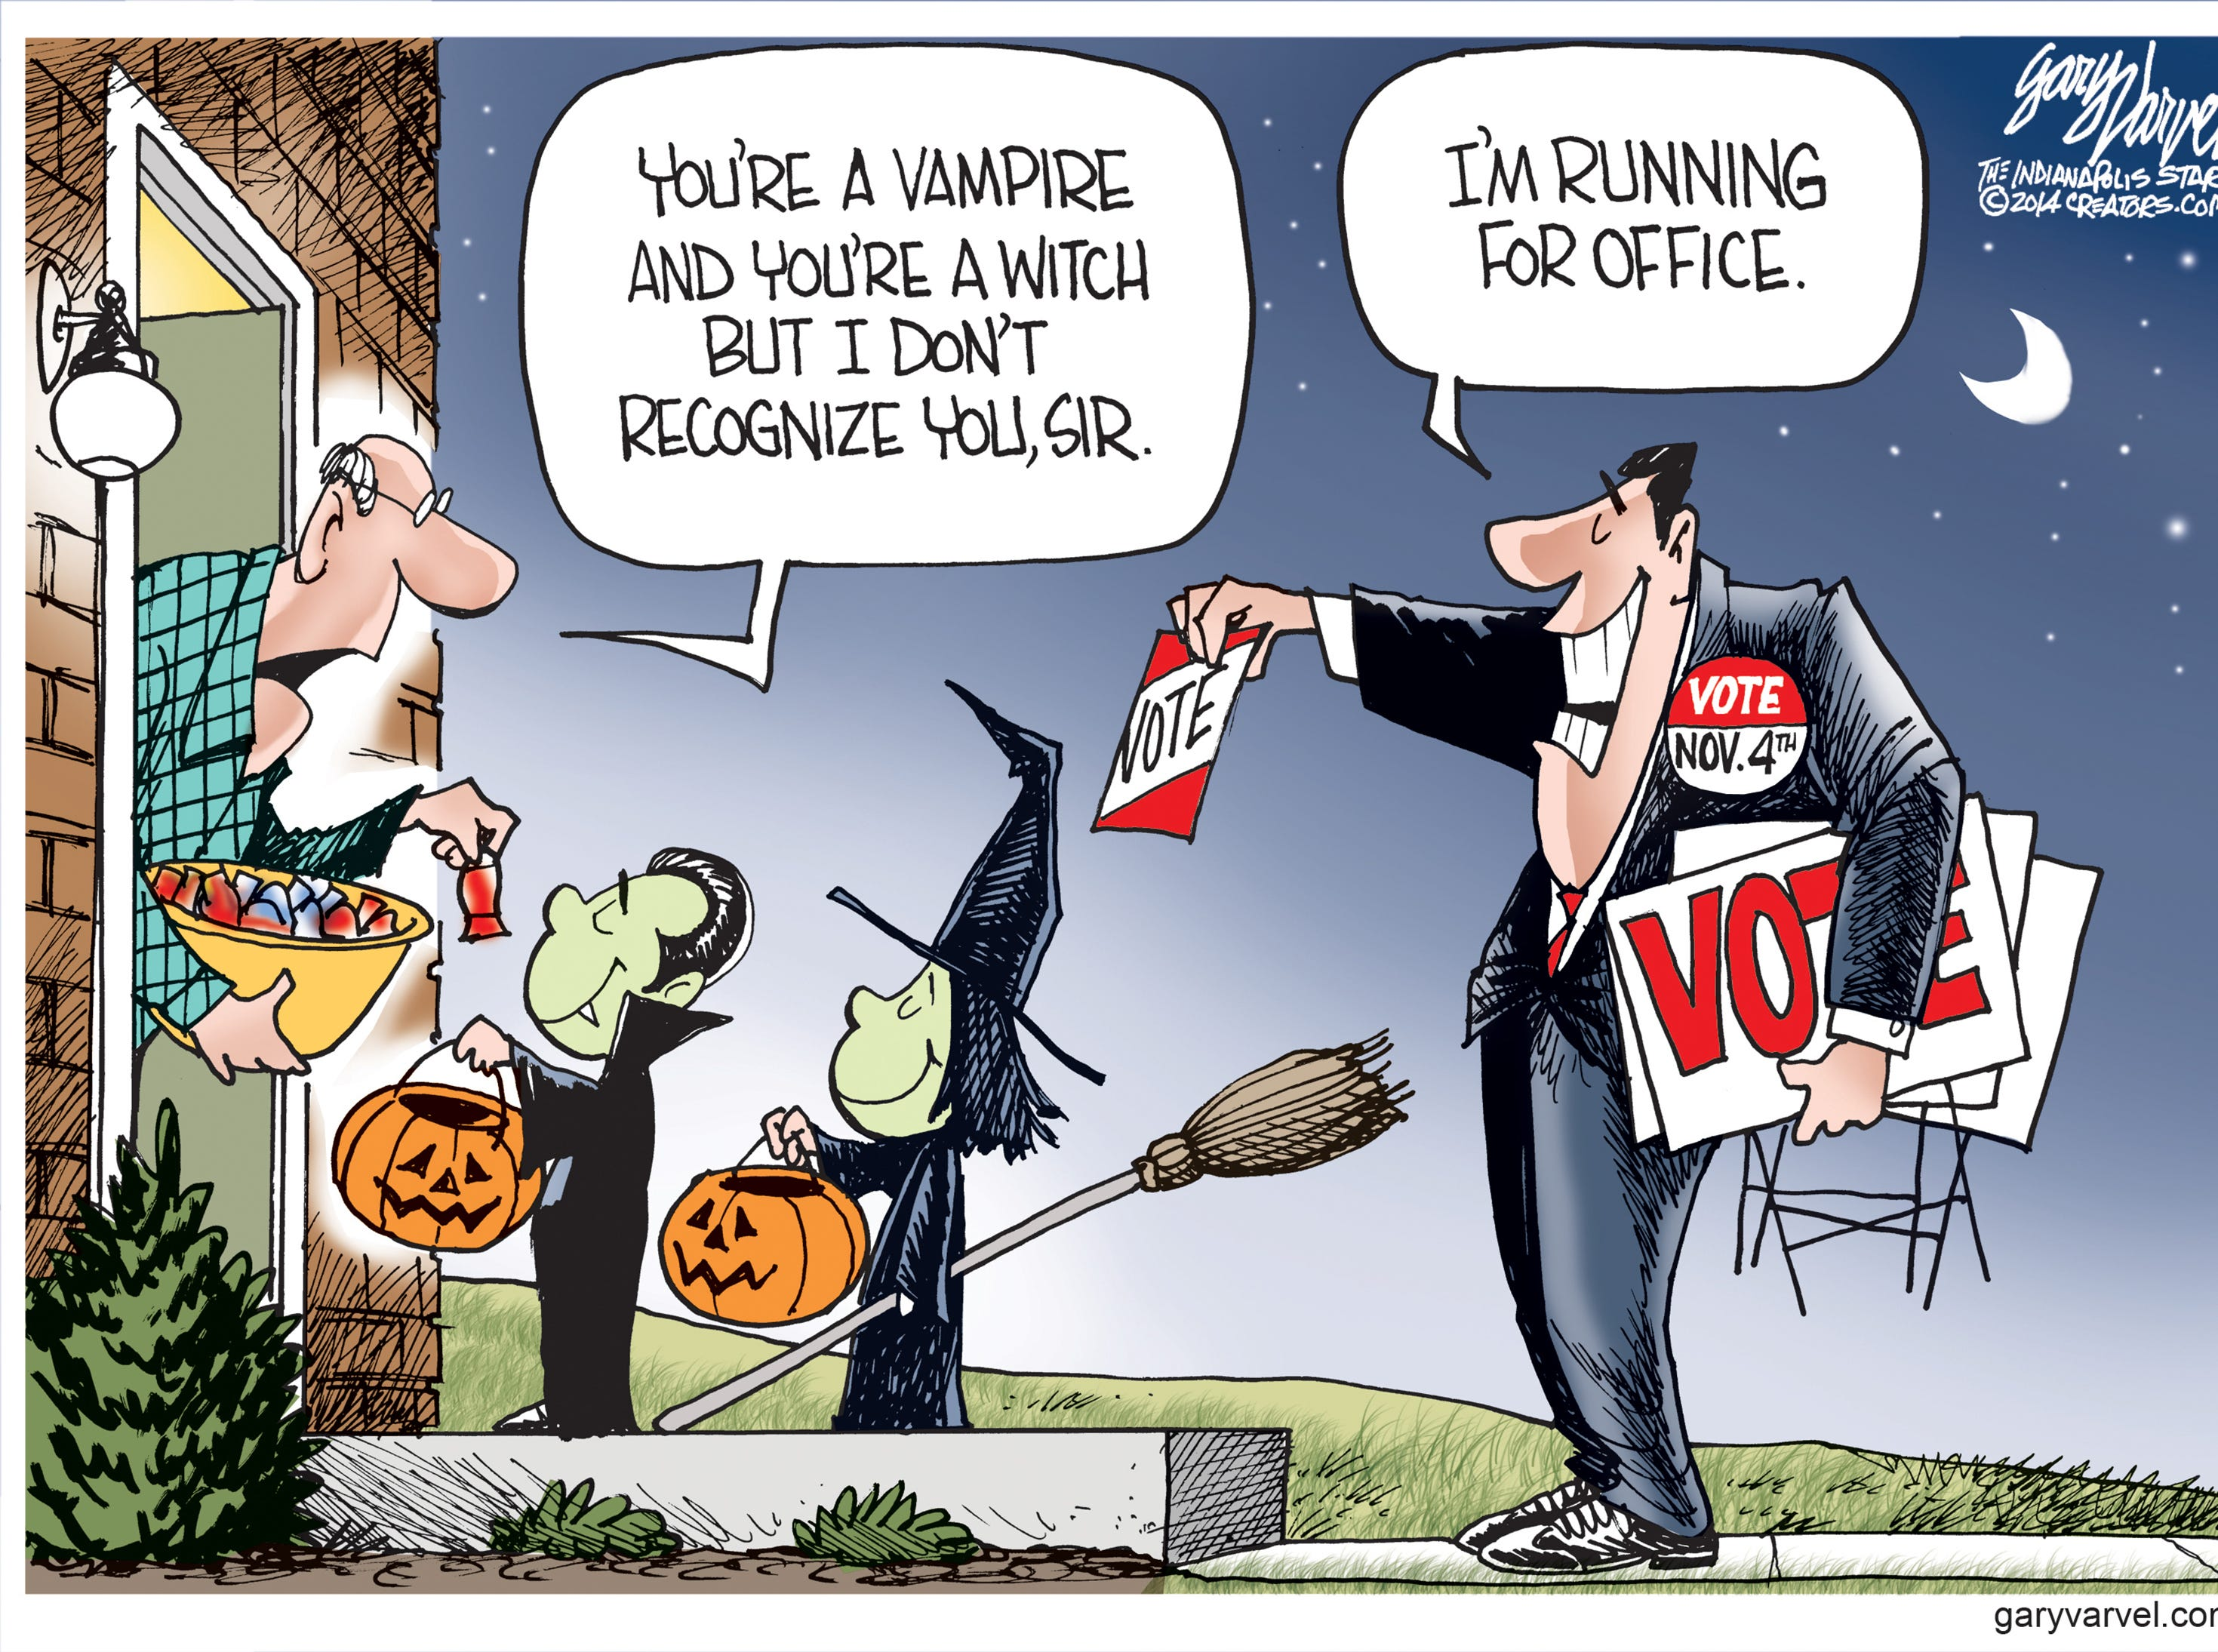 Originally published in 2014. The cartoonist's homepage, indystar.com/opinion/varvel